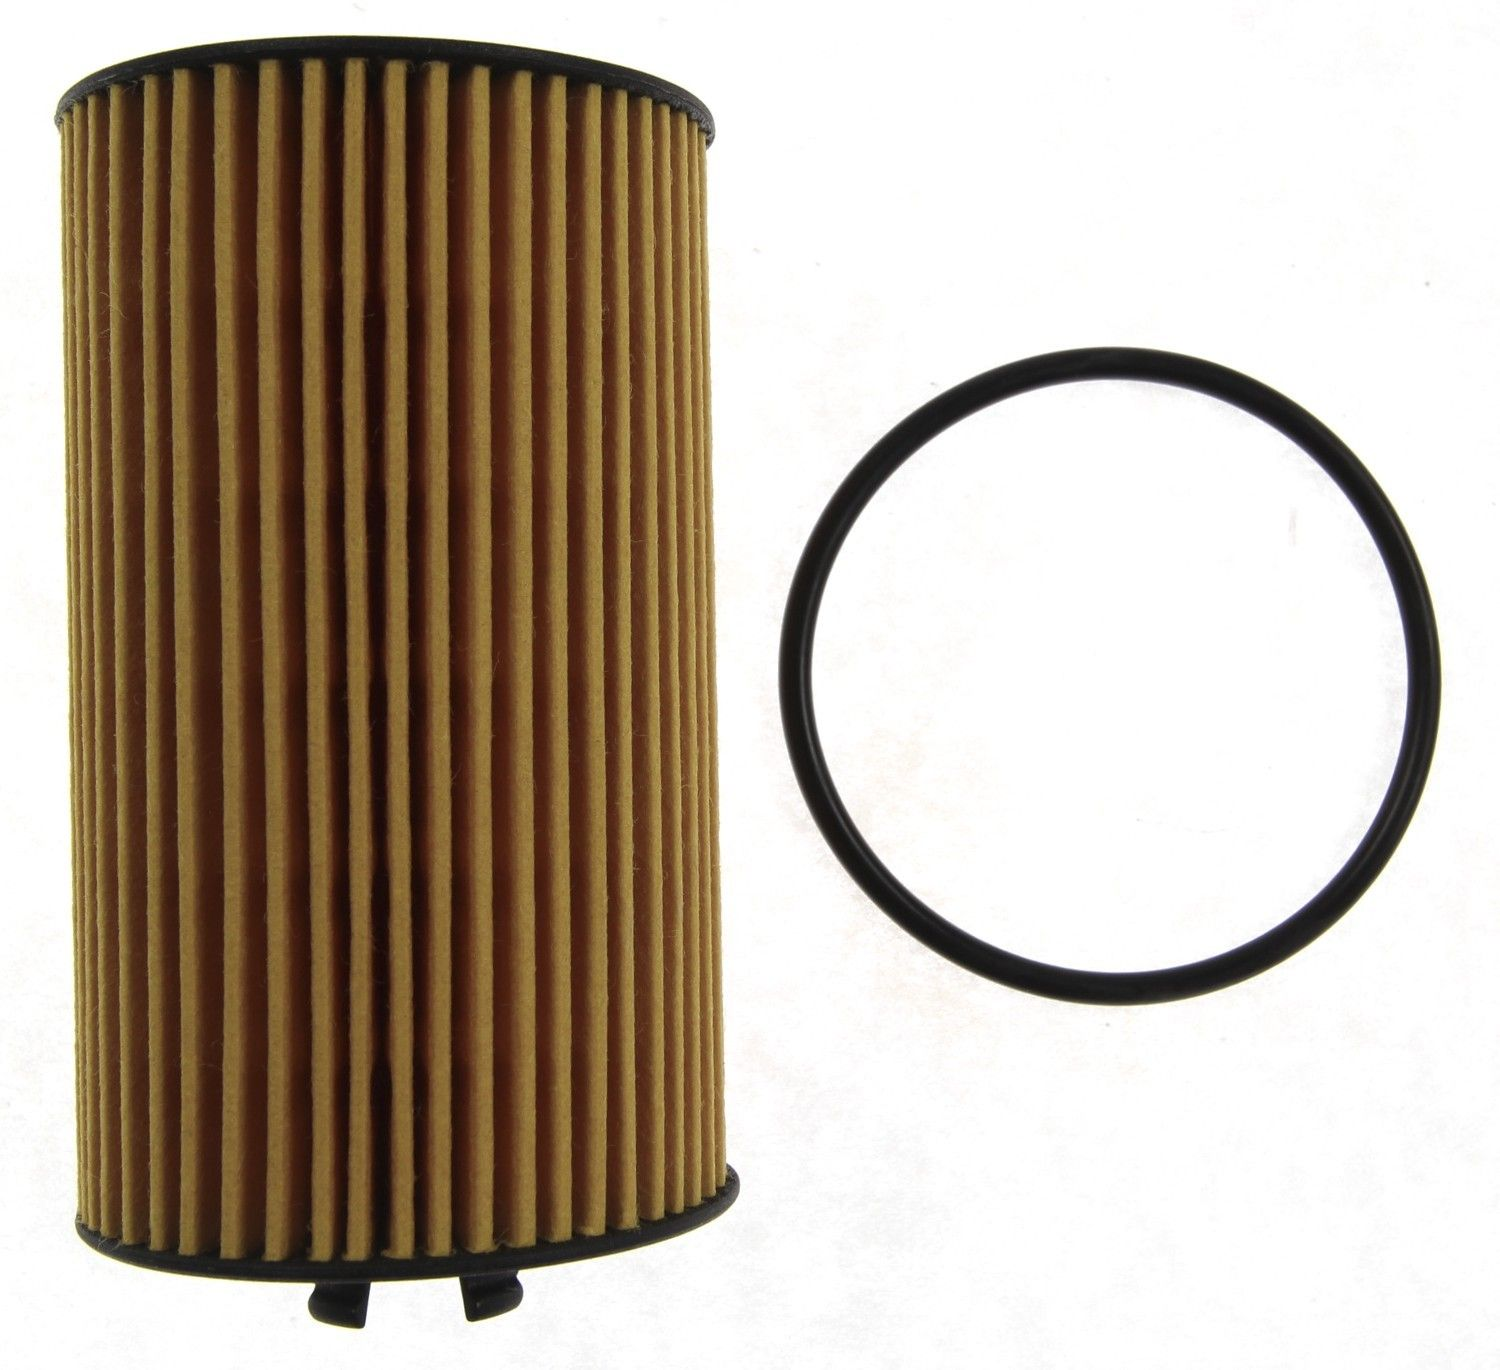 Buick Parts Long Island >> Amusing Oil Filter Location On A 2013 Buick Encore Ideas - Best Image Wire - binvm.us